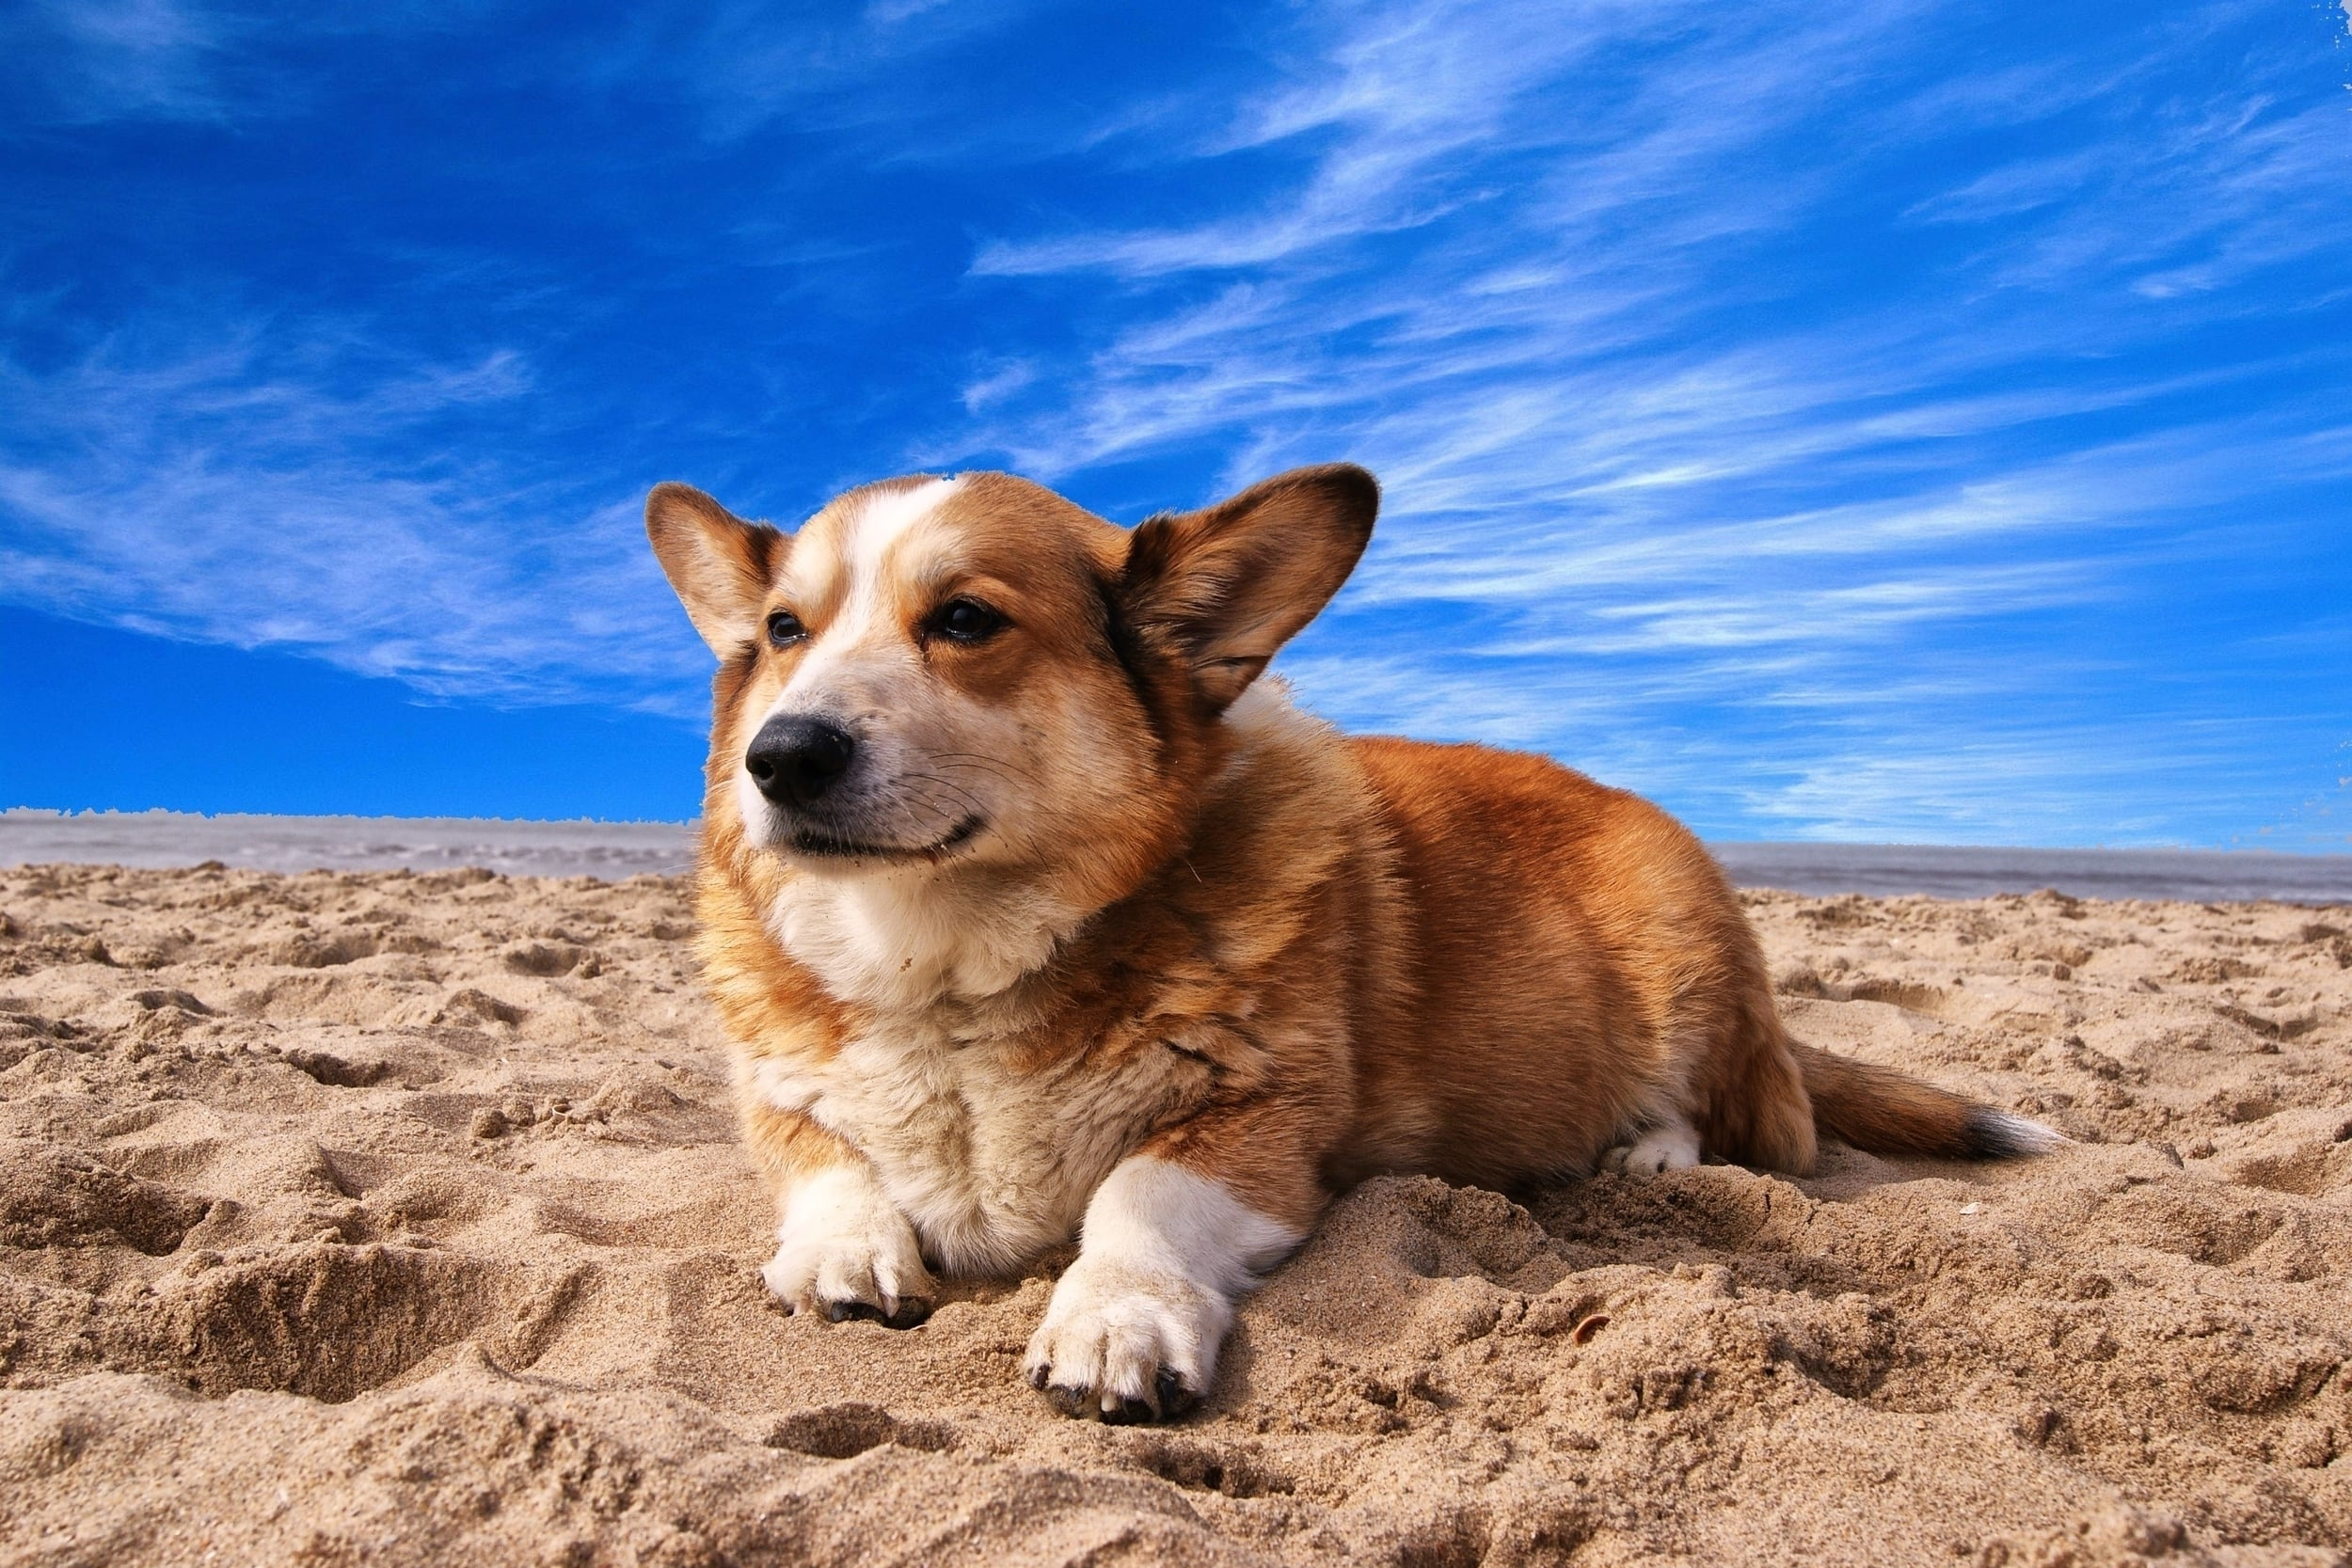 Cute Dog on a beach